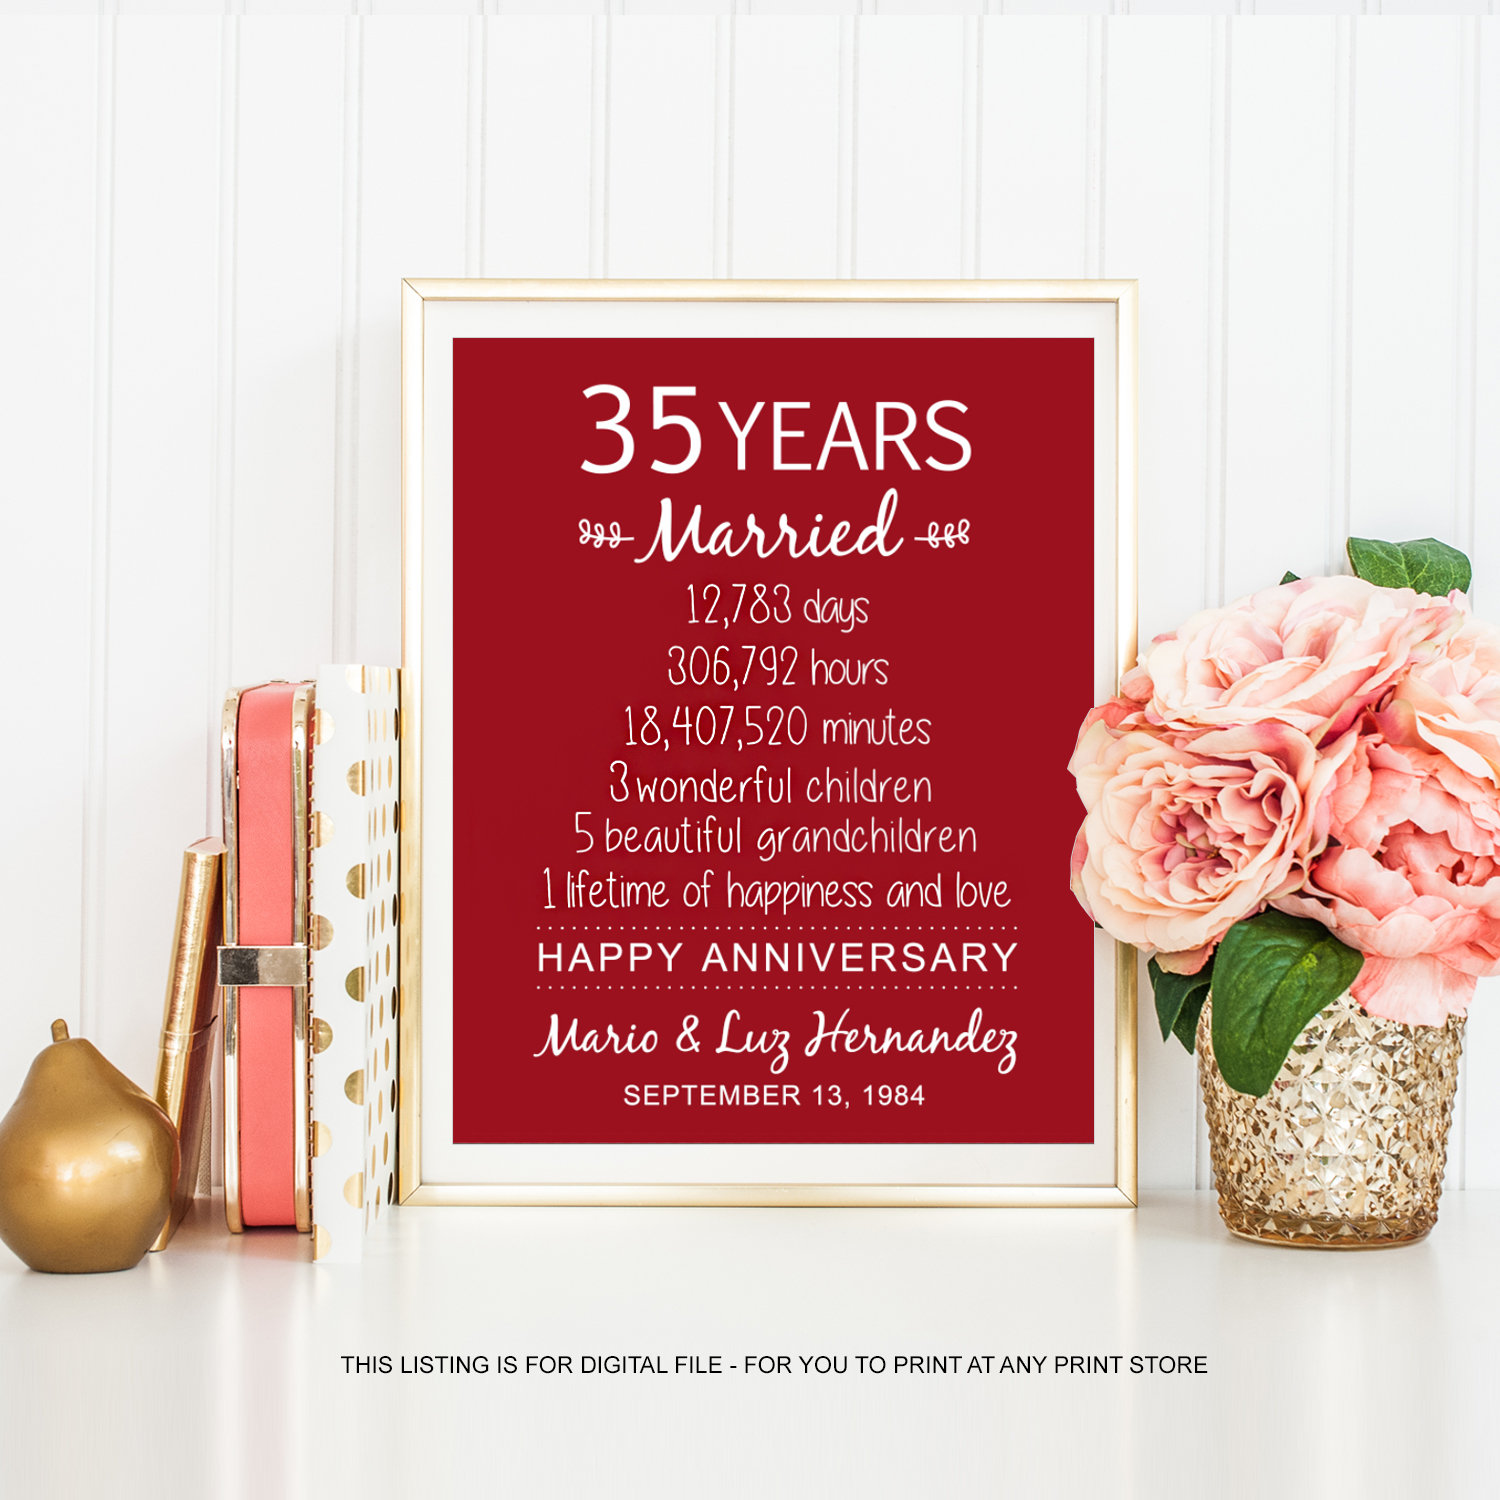 35 Wedding Anniversary Gift For Wife: 35th Anniversary Gift For Her Women Men Wife Him Husband